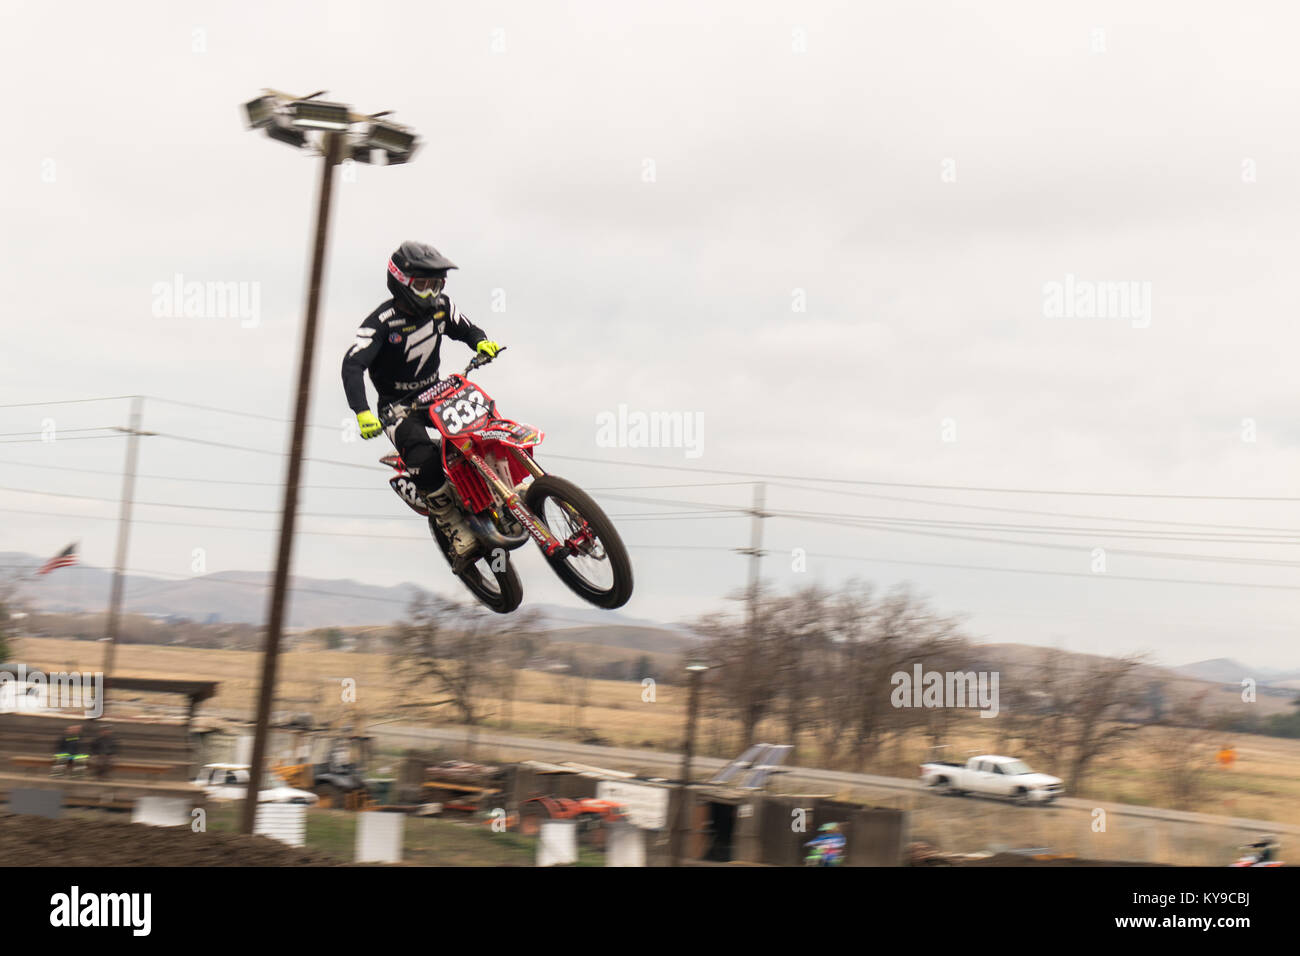 Dirt Bike High Resolution Stock Photography And Images Alamy